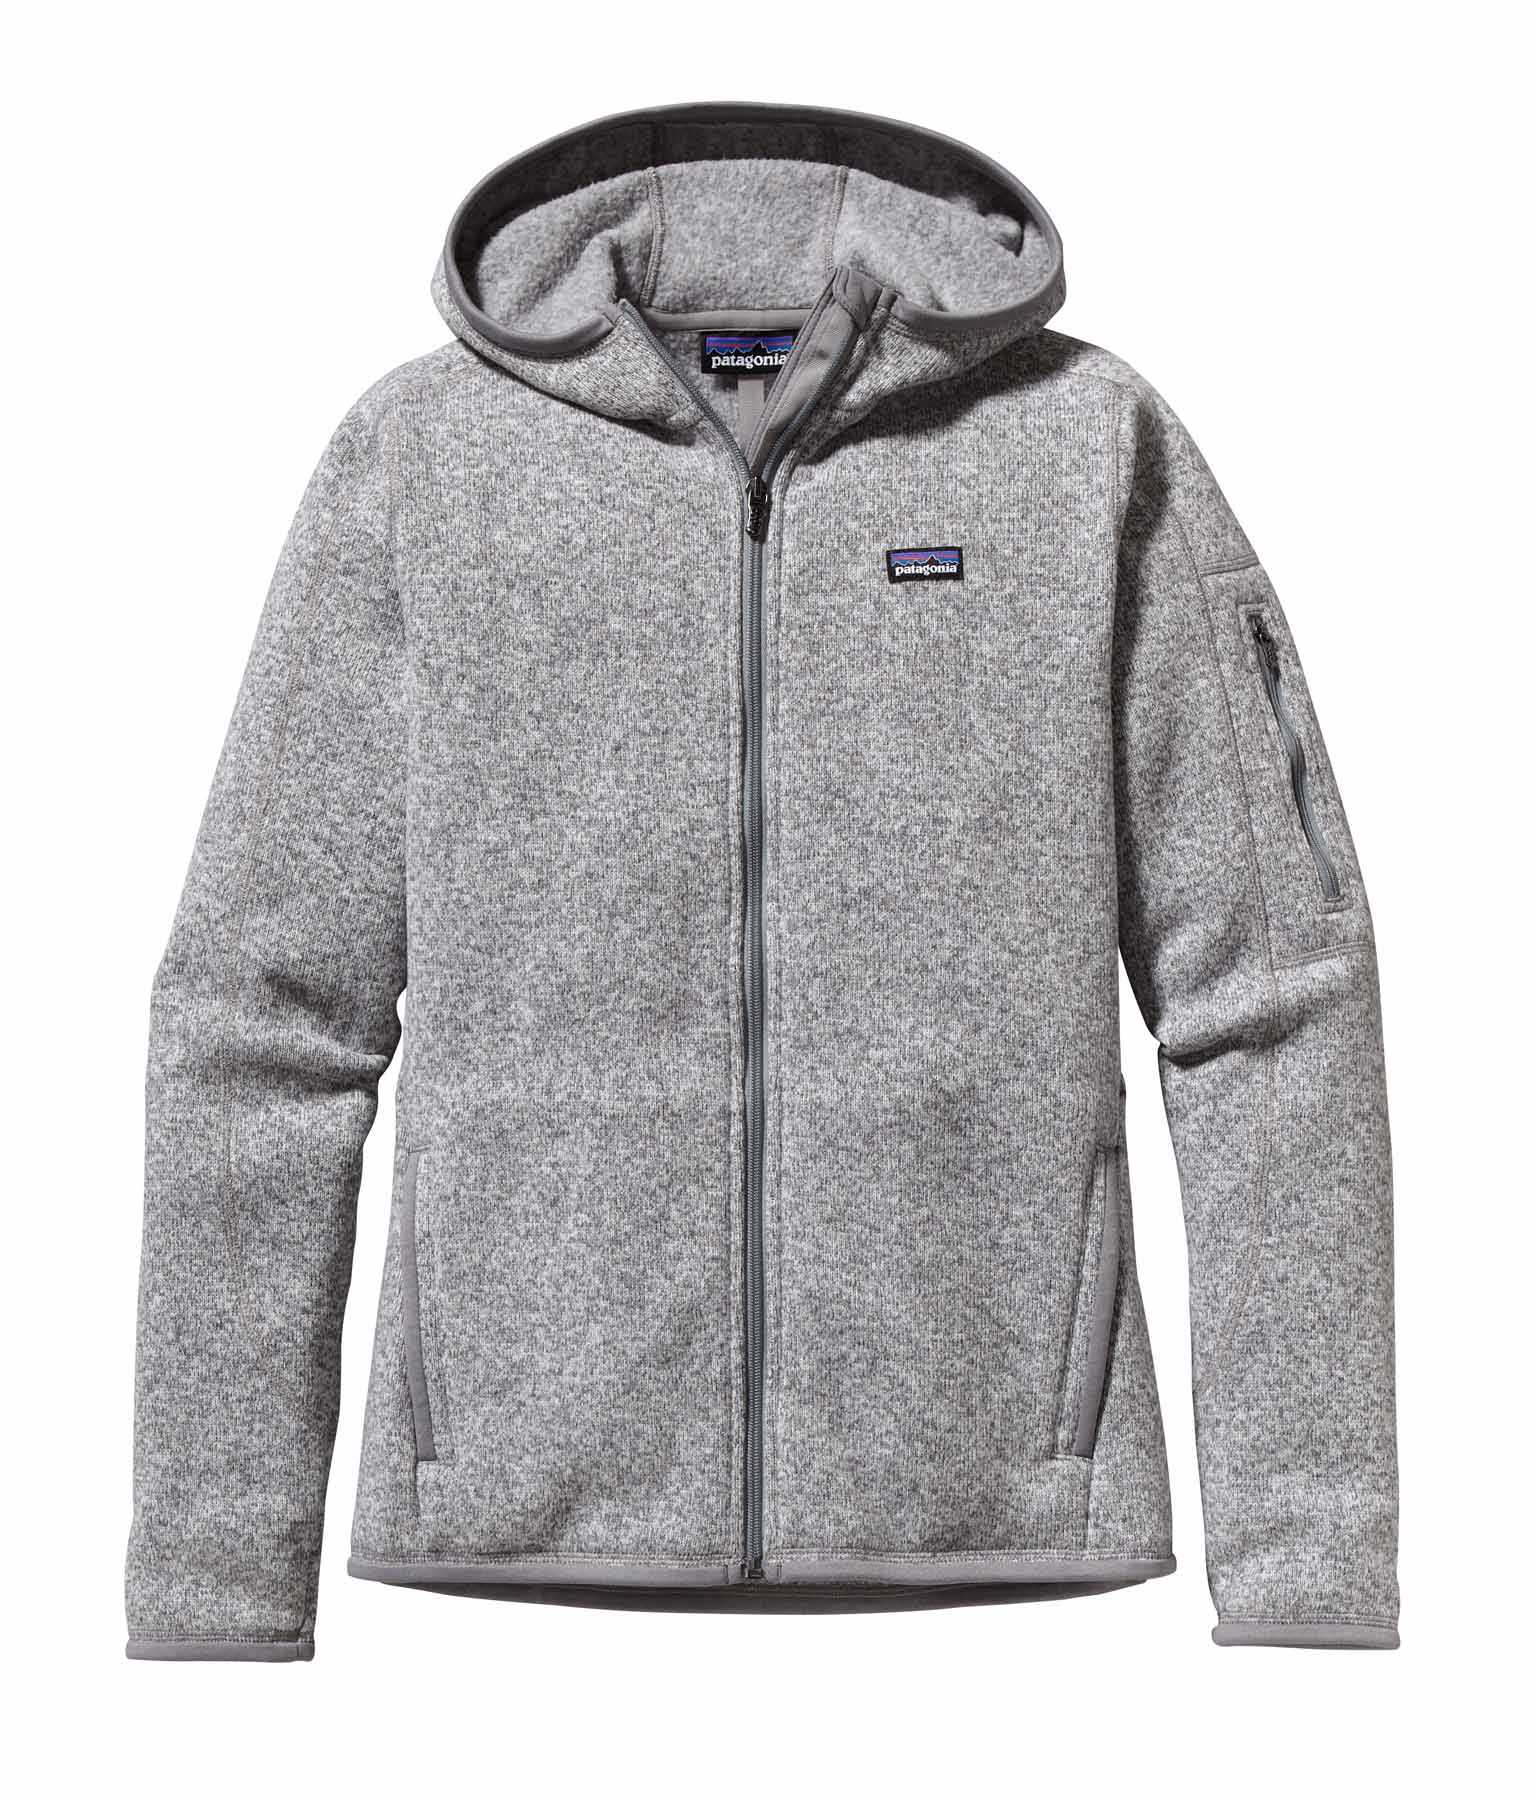 PATAGONIA W'S BETTER SWEATER FULL ZIP HOODY  (25537)